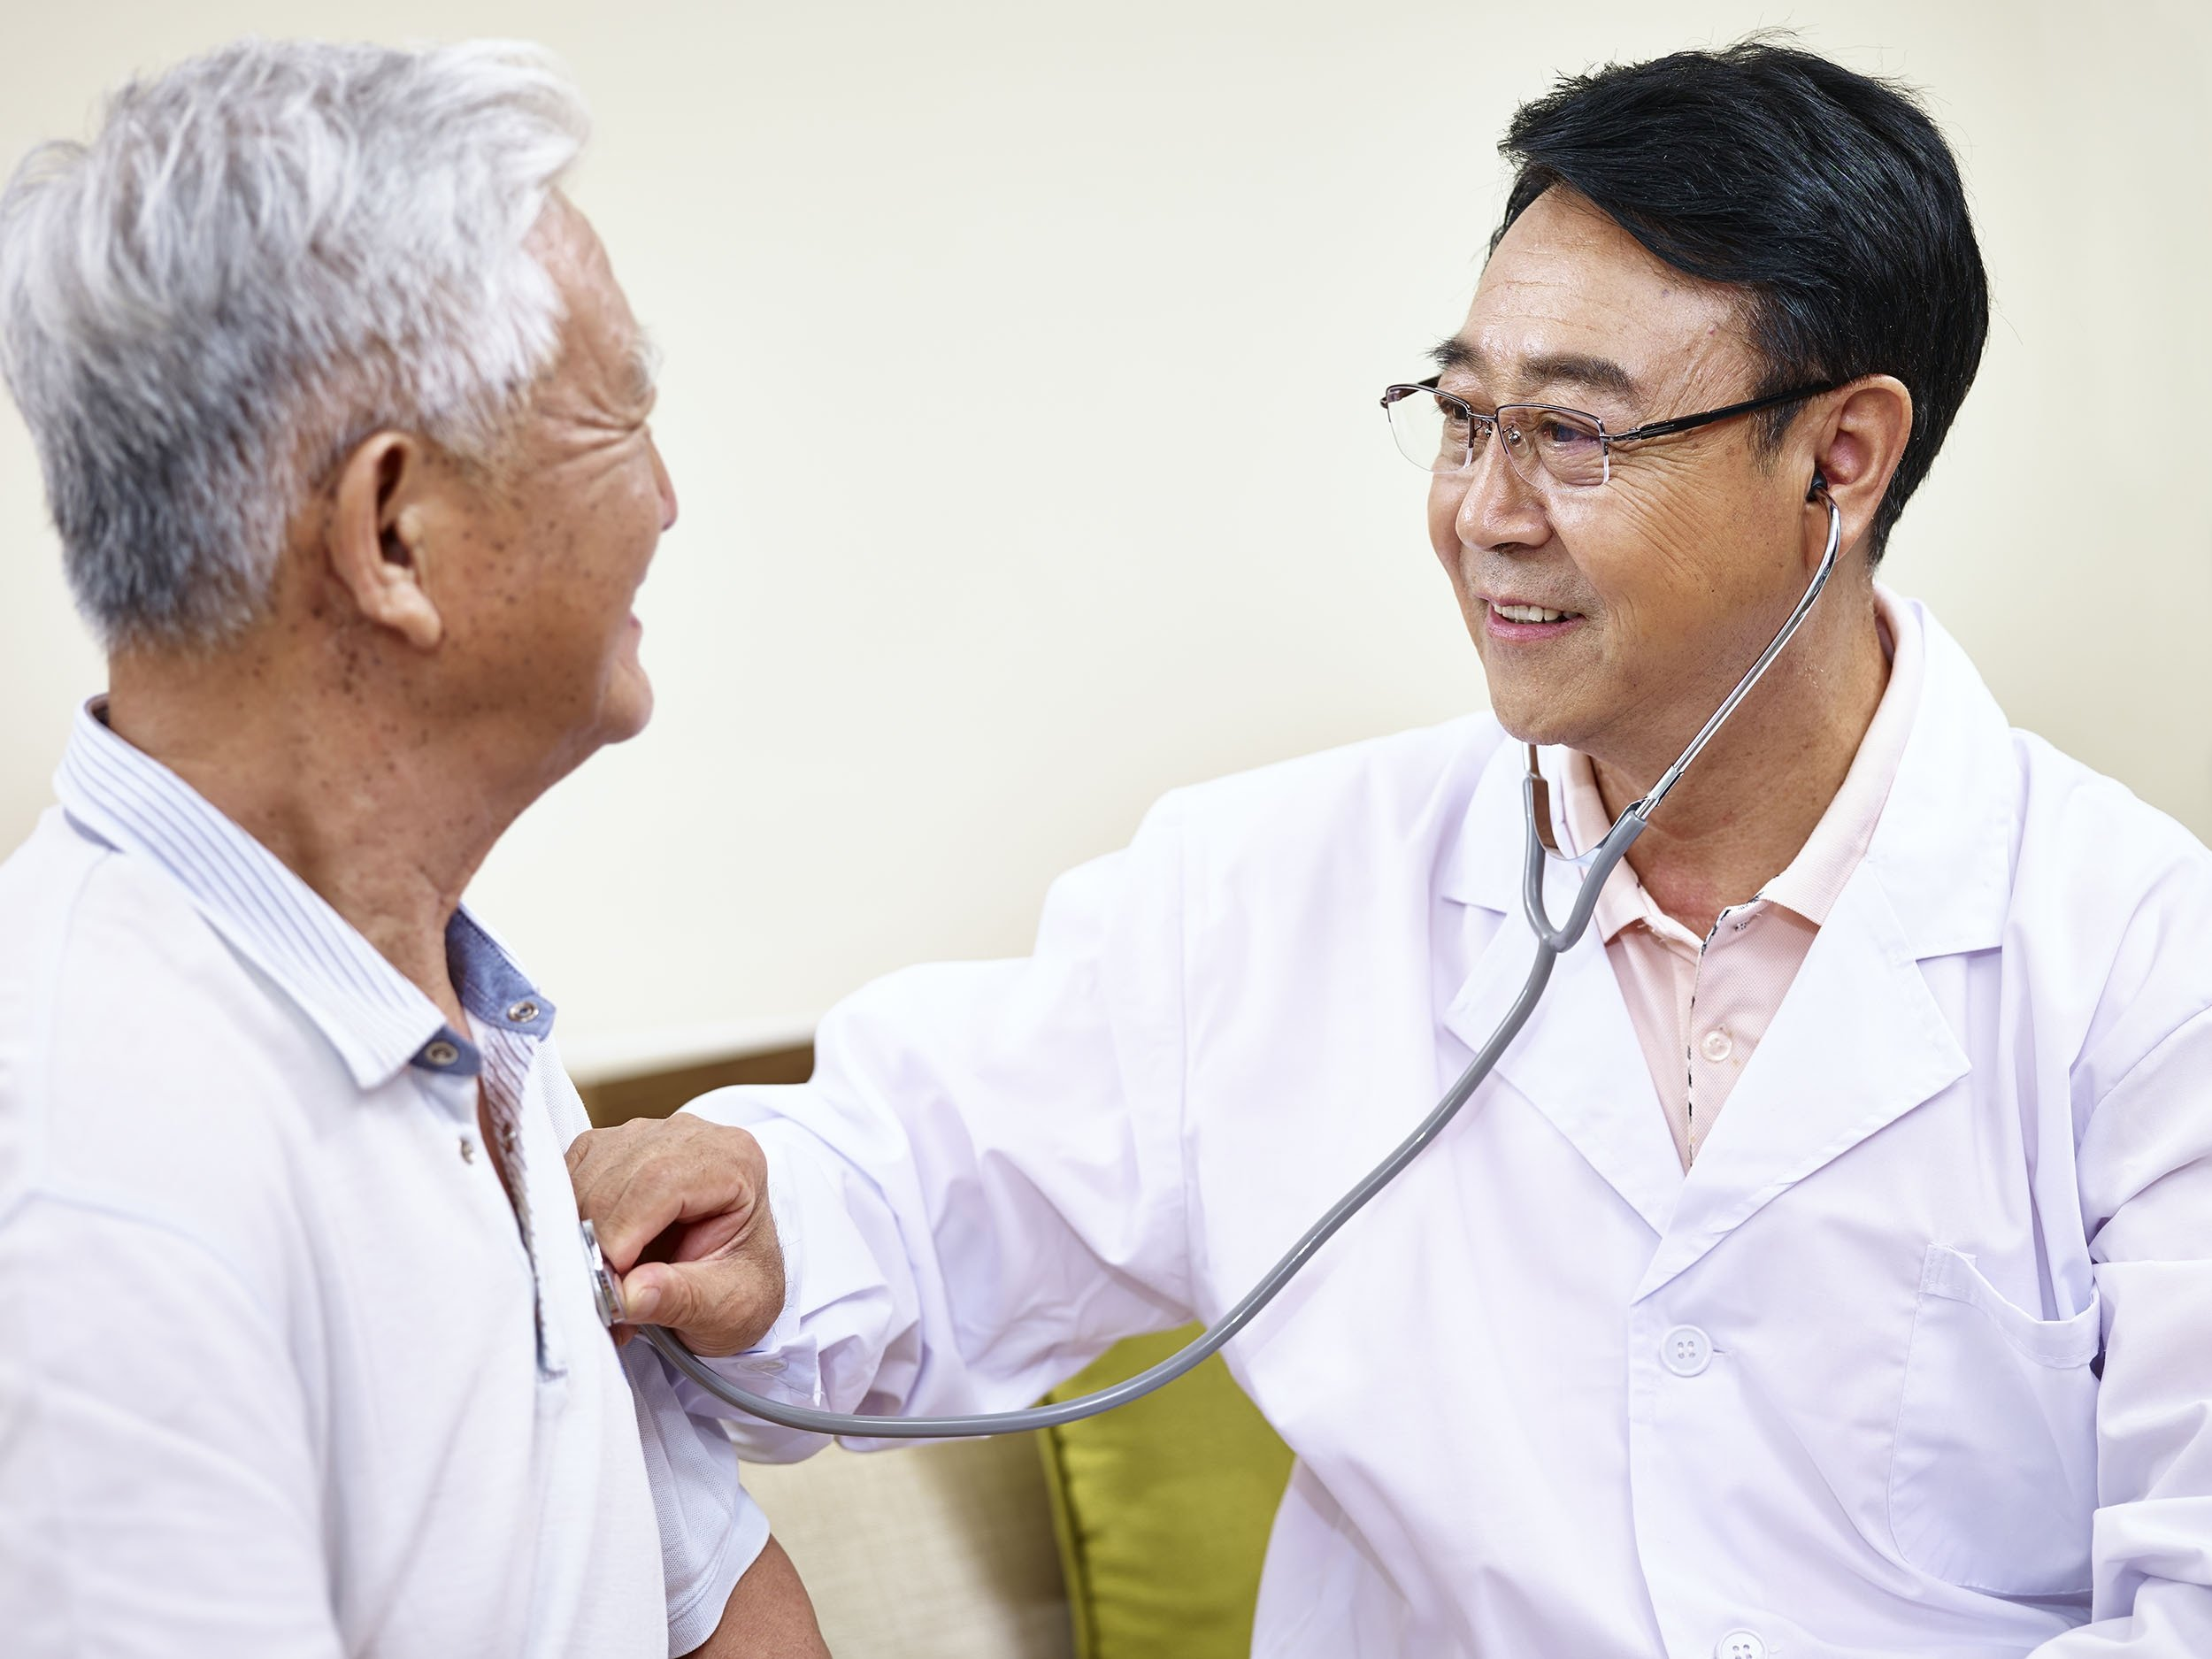 """The Chinese people's healthy life expectancy (known as """"HALE"""") is 2.5 years longer than Americans'. (Shutterstock Photo)"""